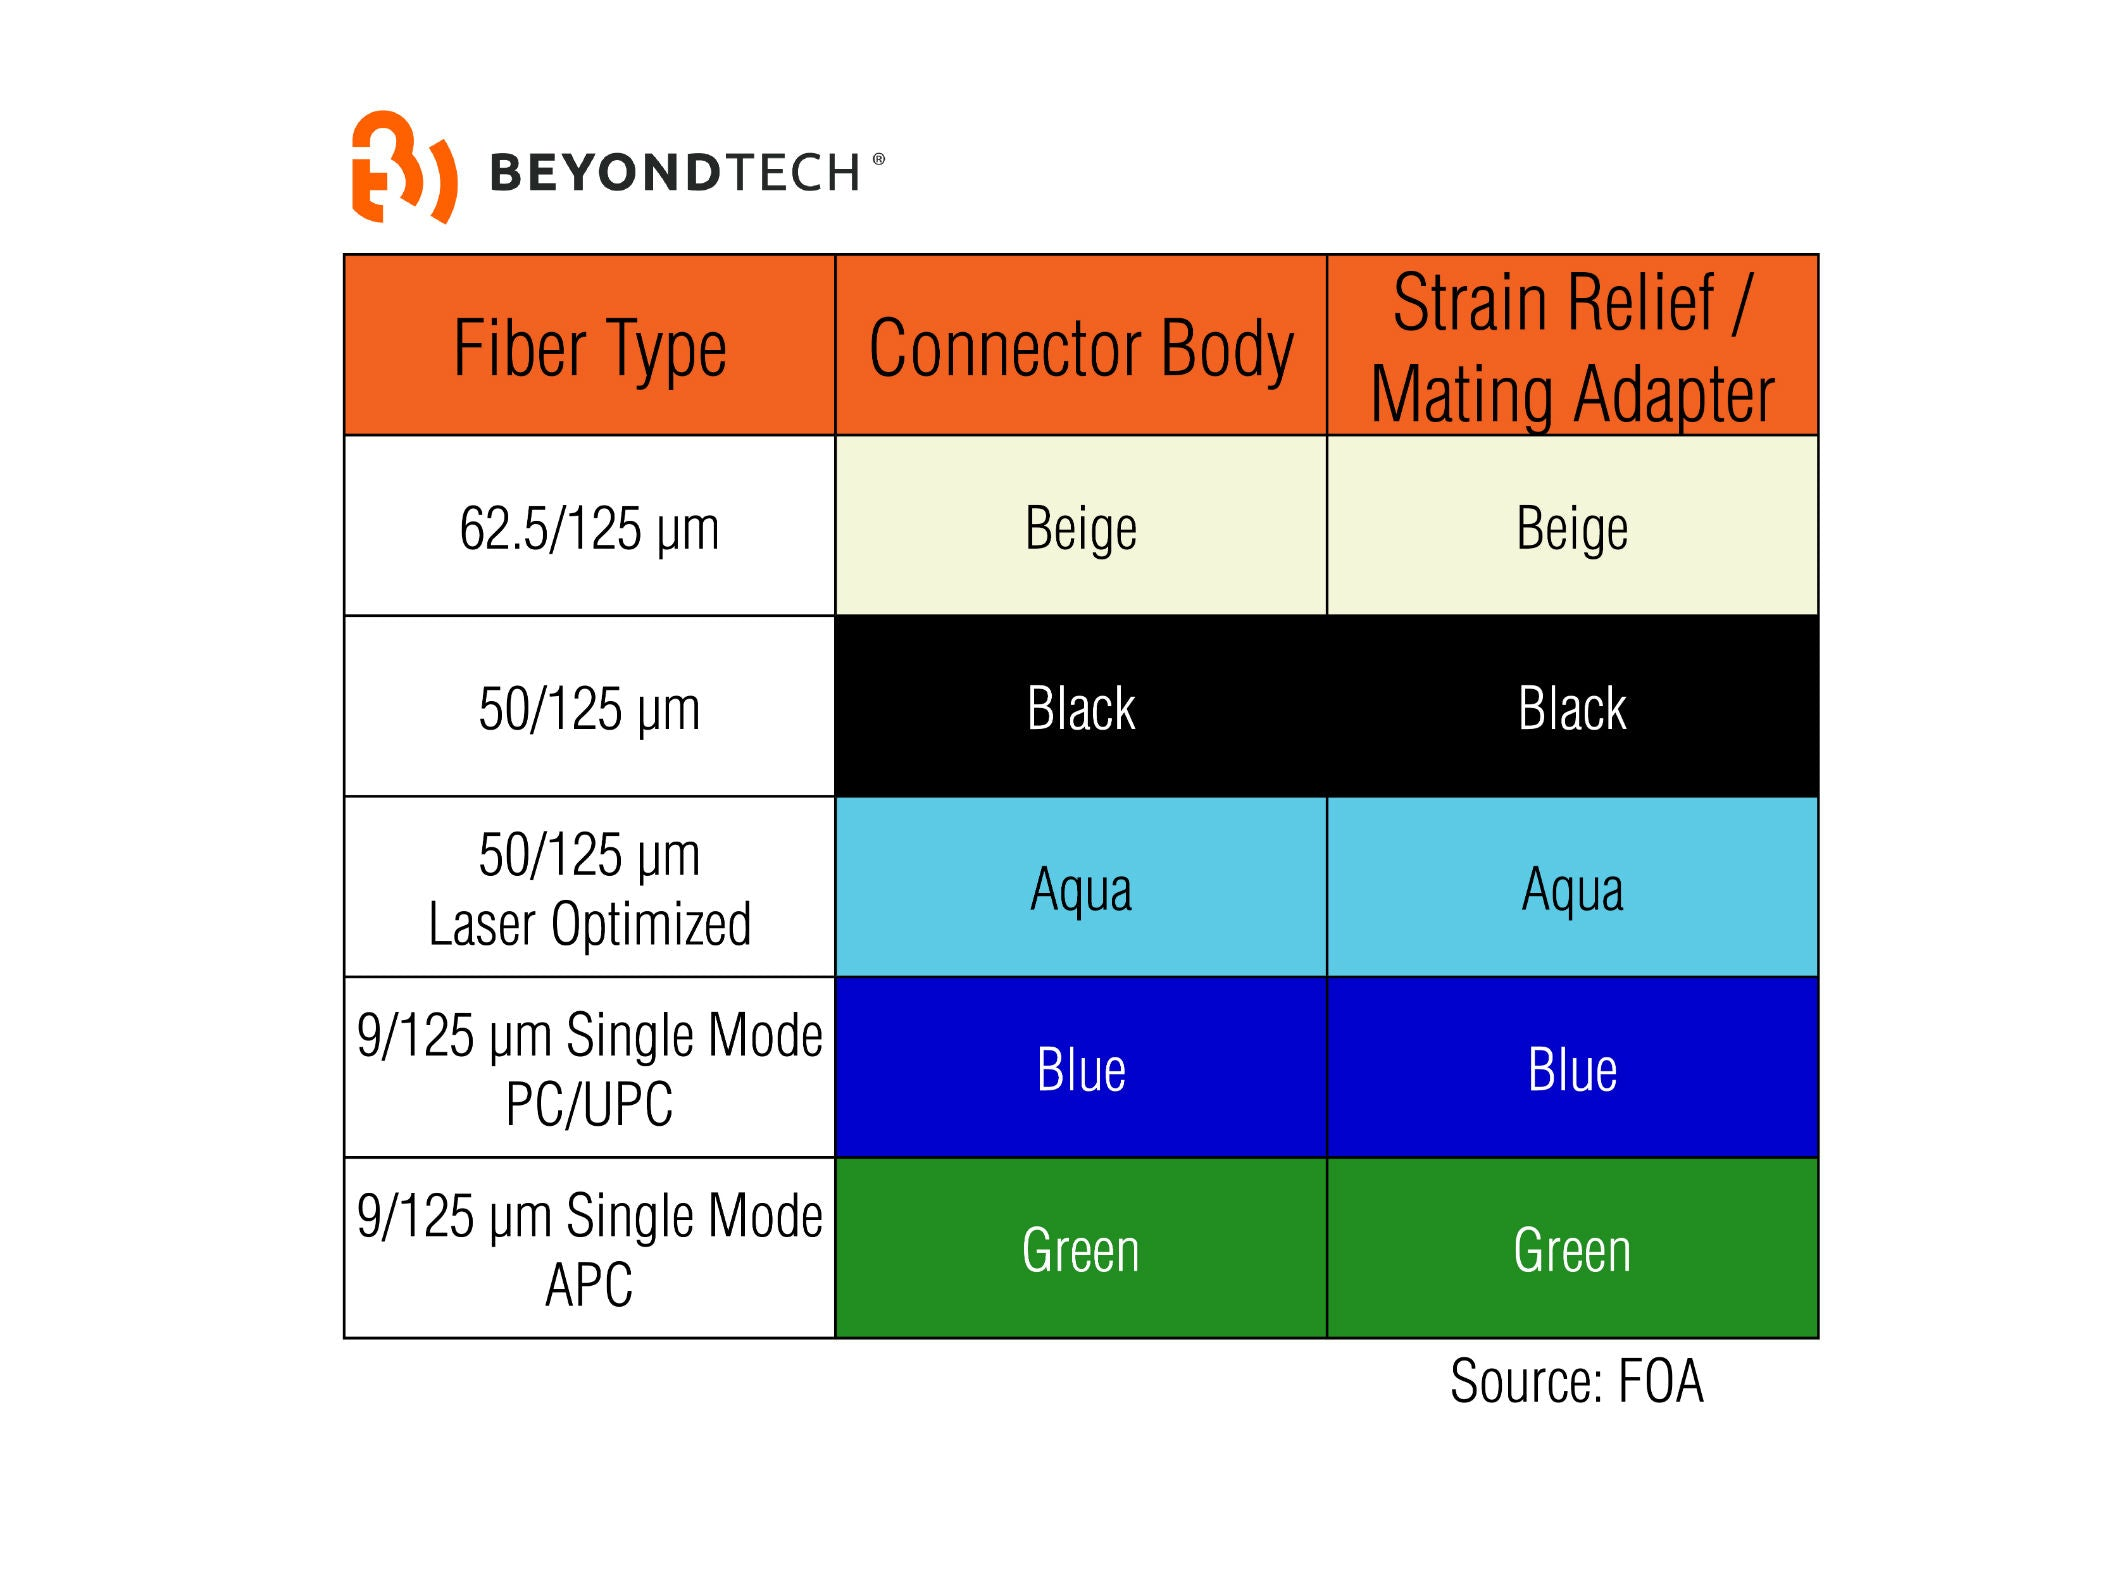 Cat 5 Cable Color Code Diagram Further Rj45 Ether Cable Color Code In